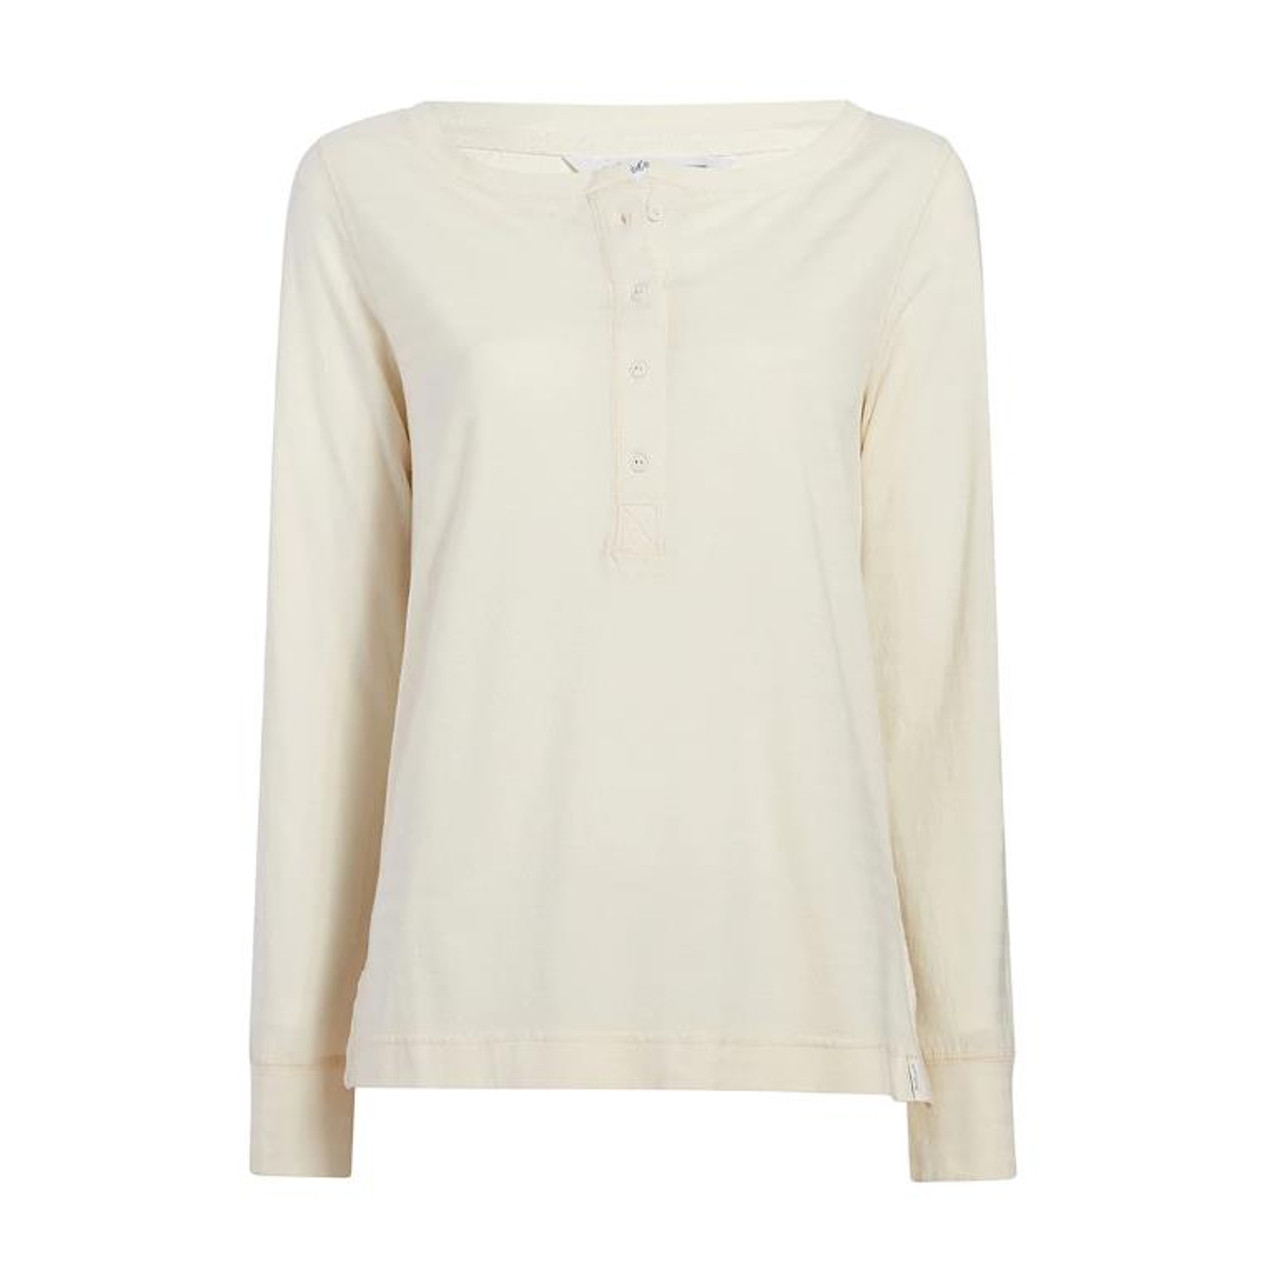 9255065bc79 Woolrich Women s Meadow Forks Long Sleeve T-shirt - 100% Cotton  7013 -.  COLOR  Required